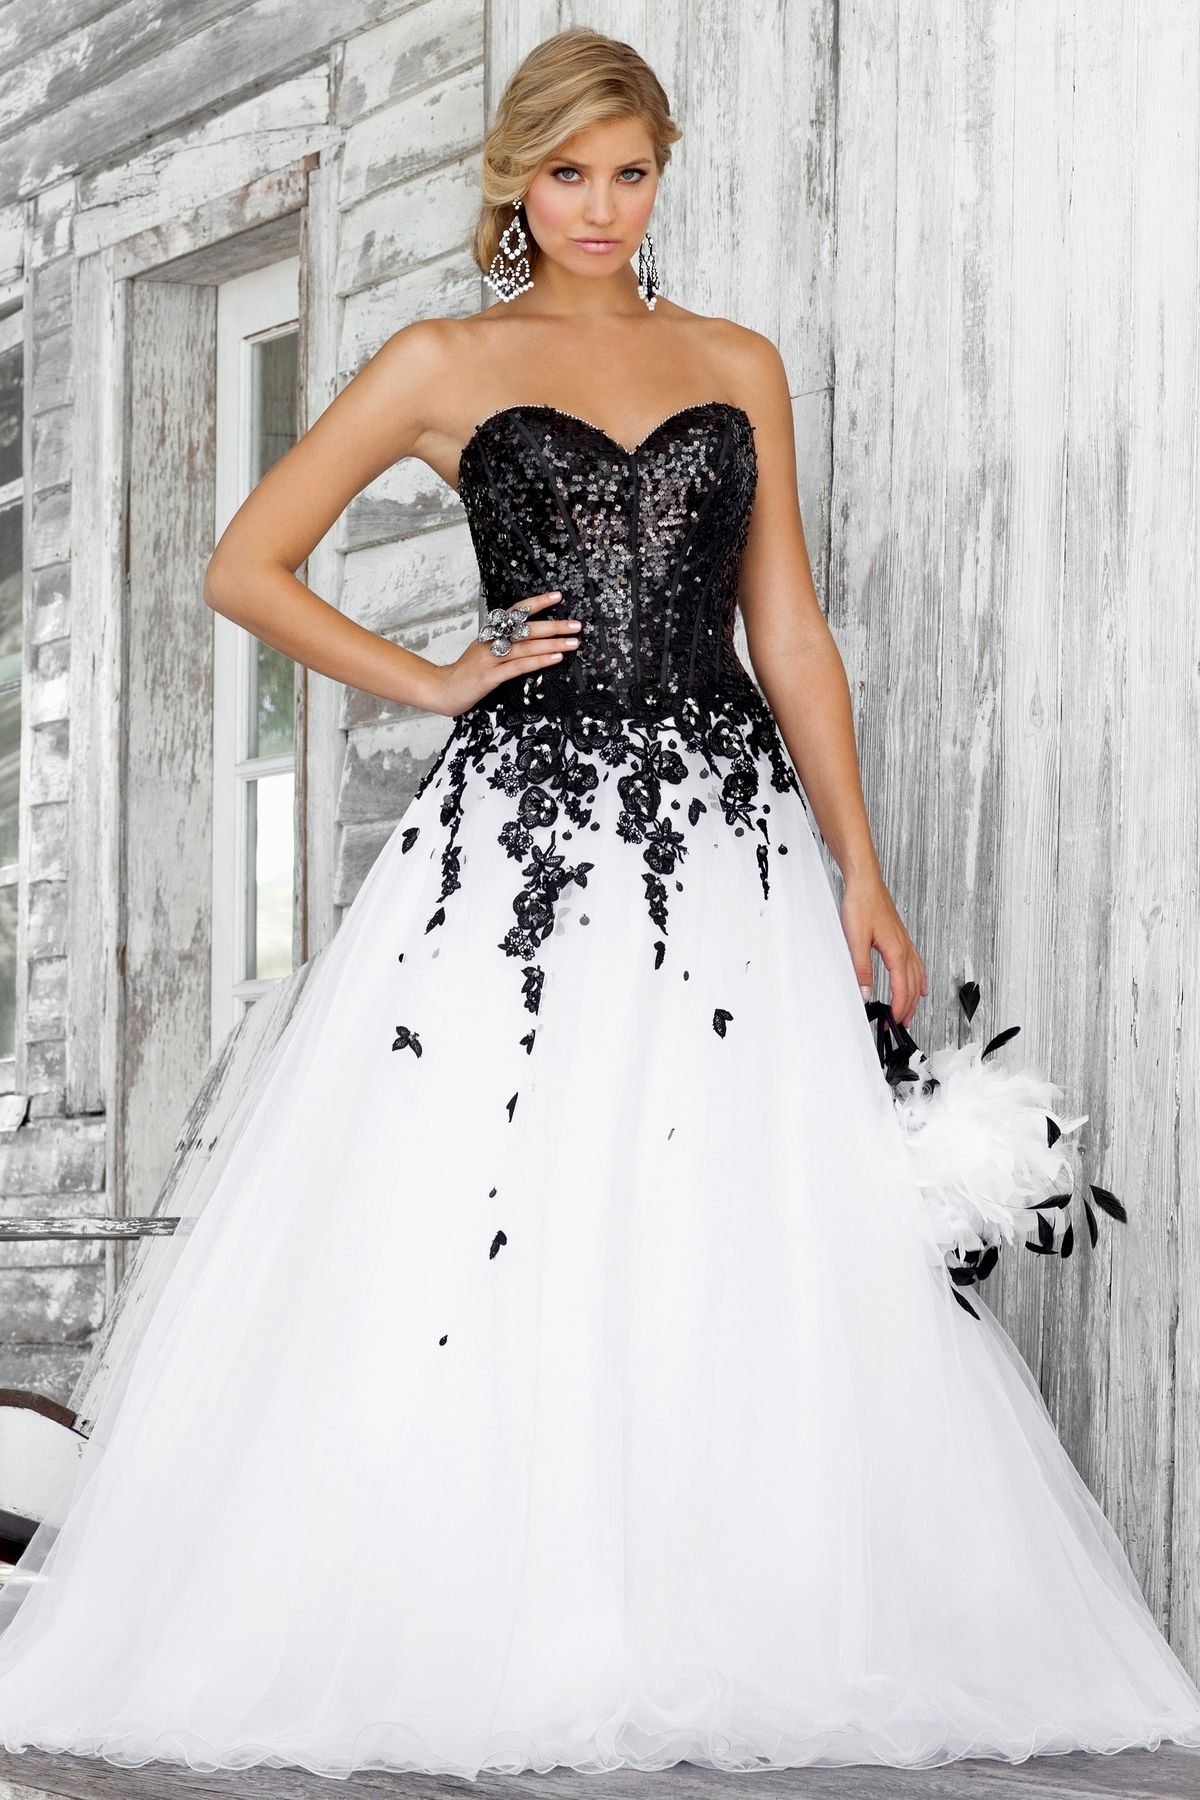 wedding dresses black wedding dresses black black and white wedding dresses for plus size sang maestro black and white strapless sweetheart wedding dress black and white wedding dresses for plus size